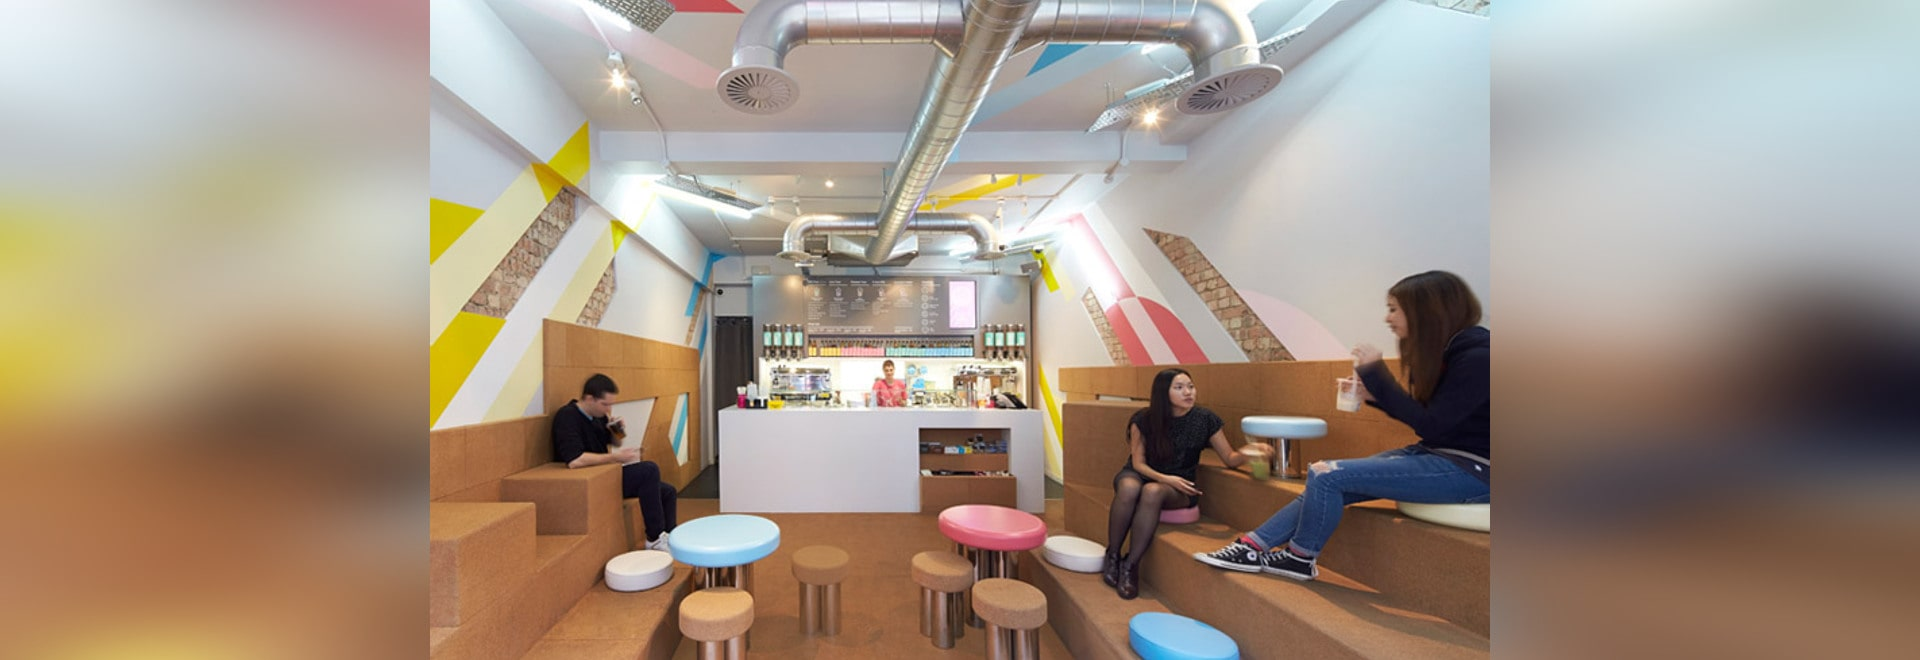 gundry & ducker's bubble tea cafe features cork seats and stripy